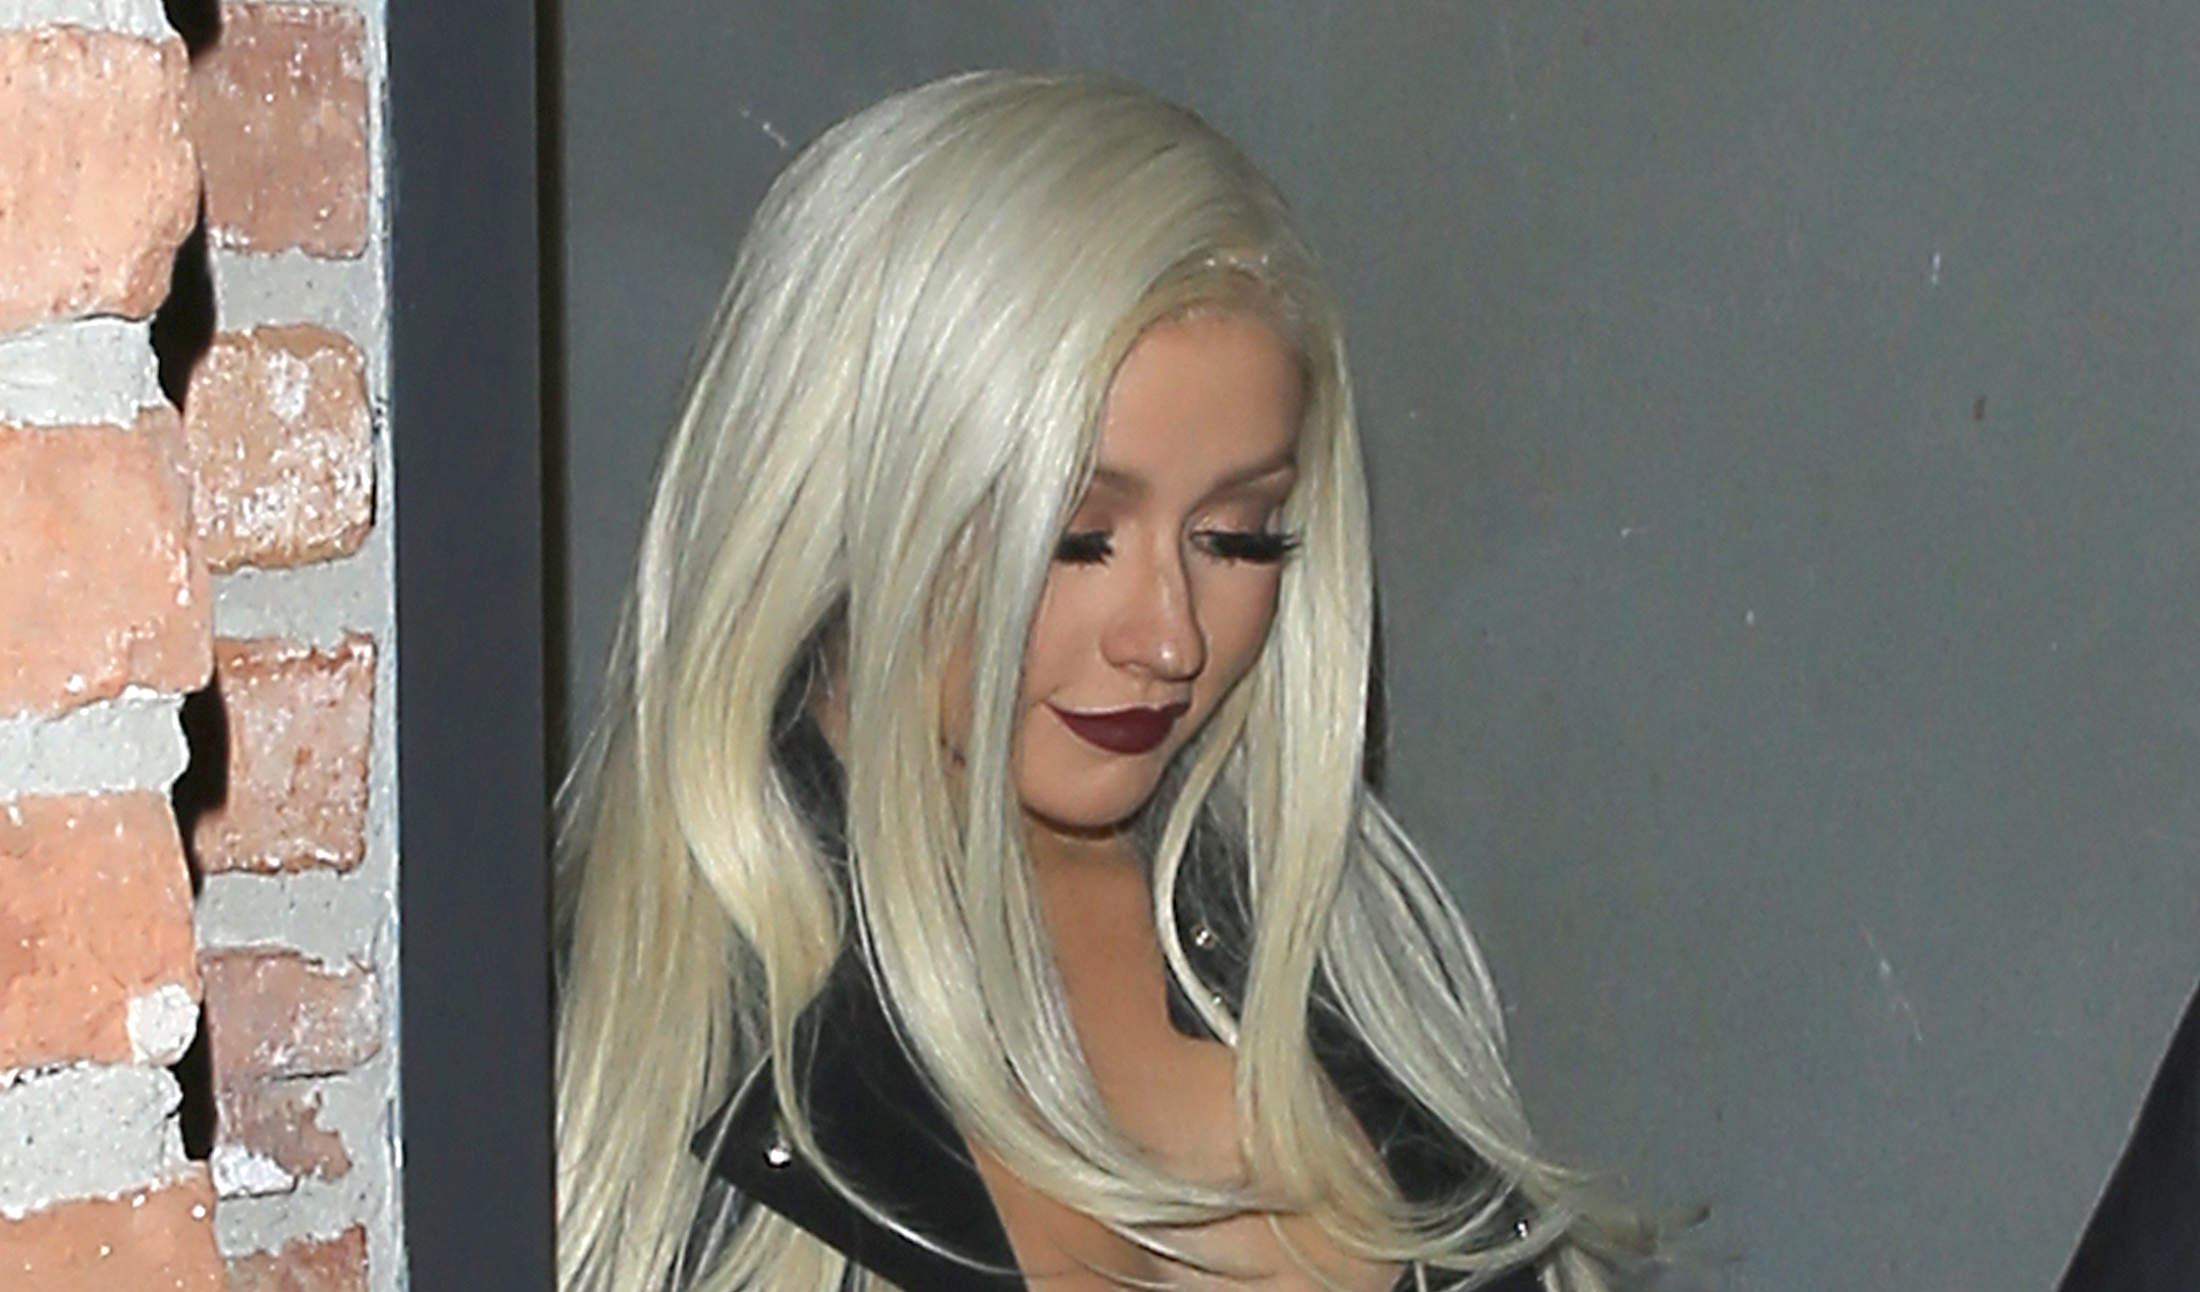 Christina Aguilera's Cleavage Makes Its Return | The Blemish